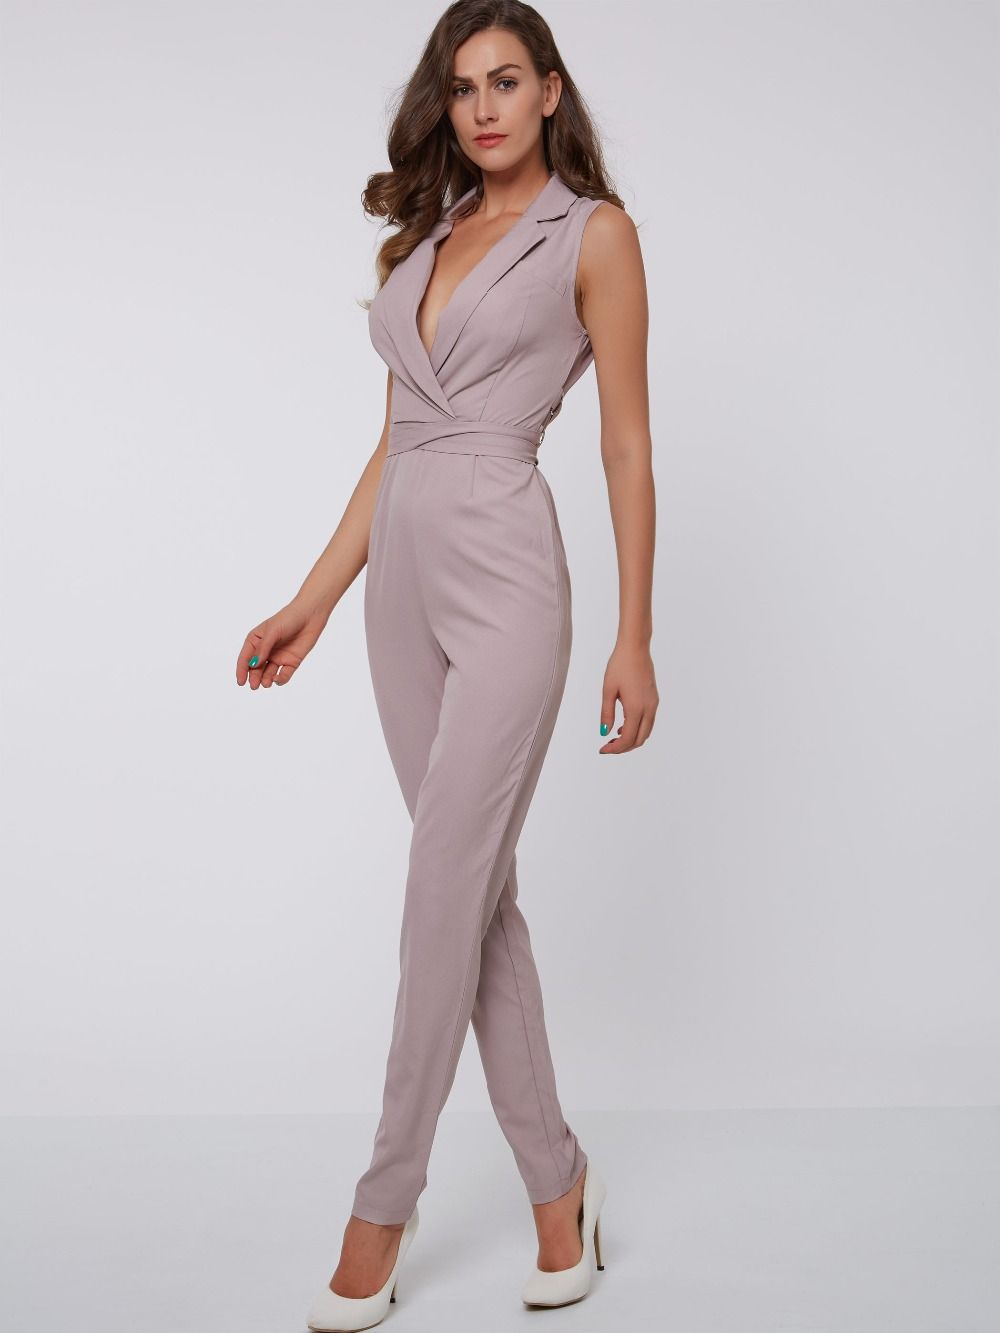 fdfaad94017 Sisjuly Women Summer Pink Jumpsuit Women Casual Full Length Pink Jumpsuit  Female Slim Lace Straight Zipper Hollow Jumpsuits   Price   20.99   FREE  Shipping ...